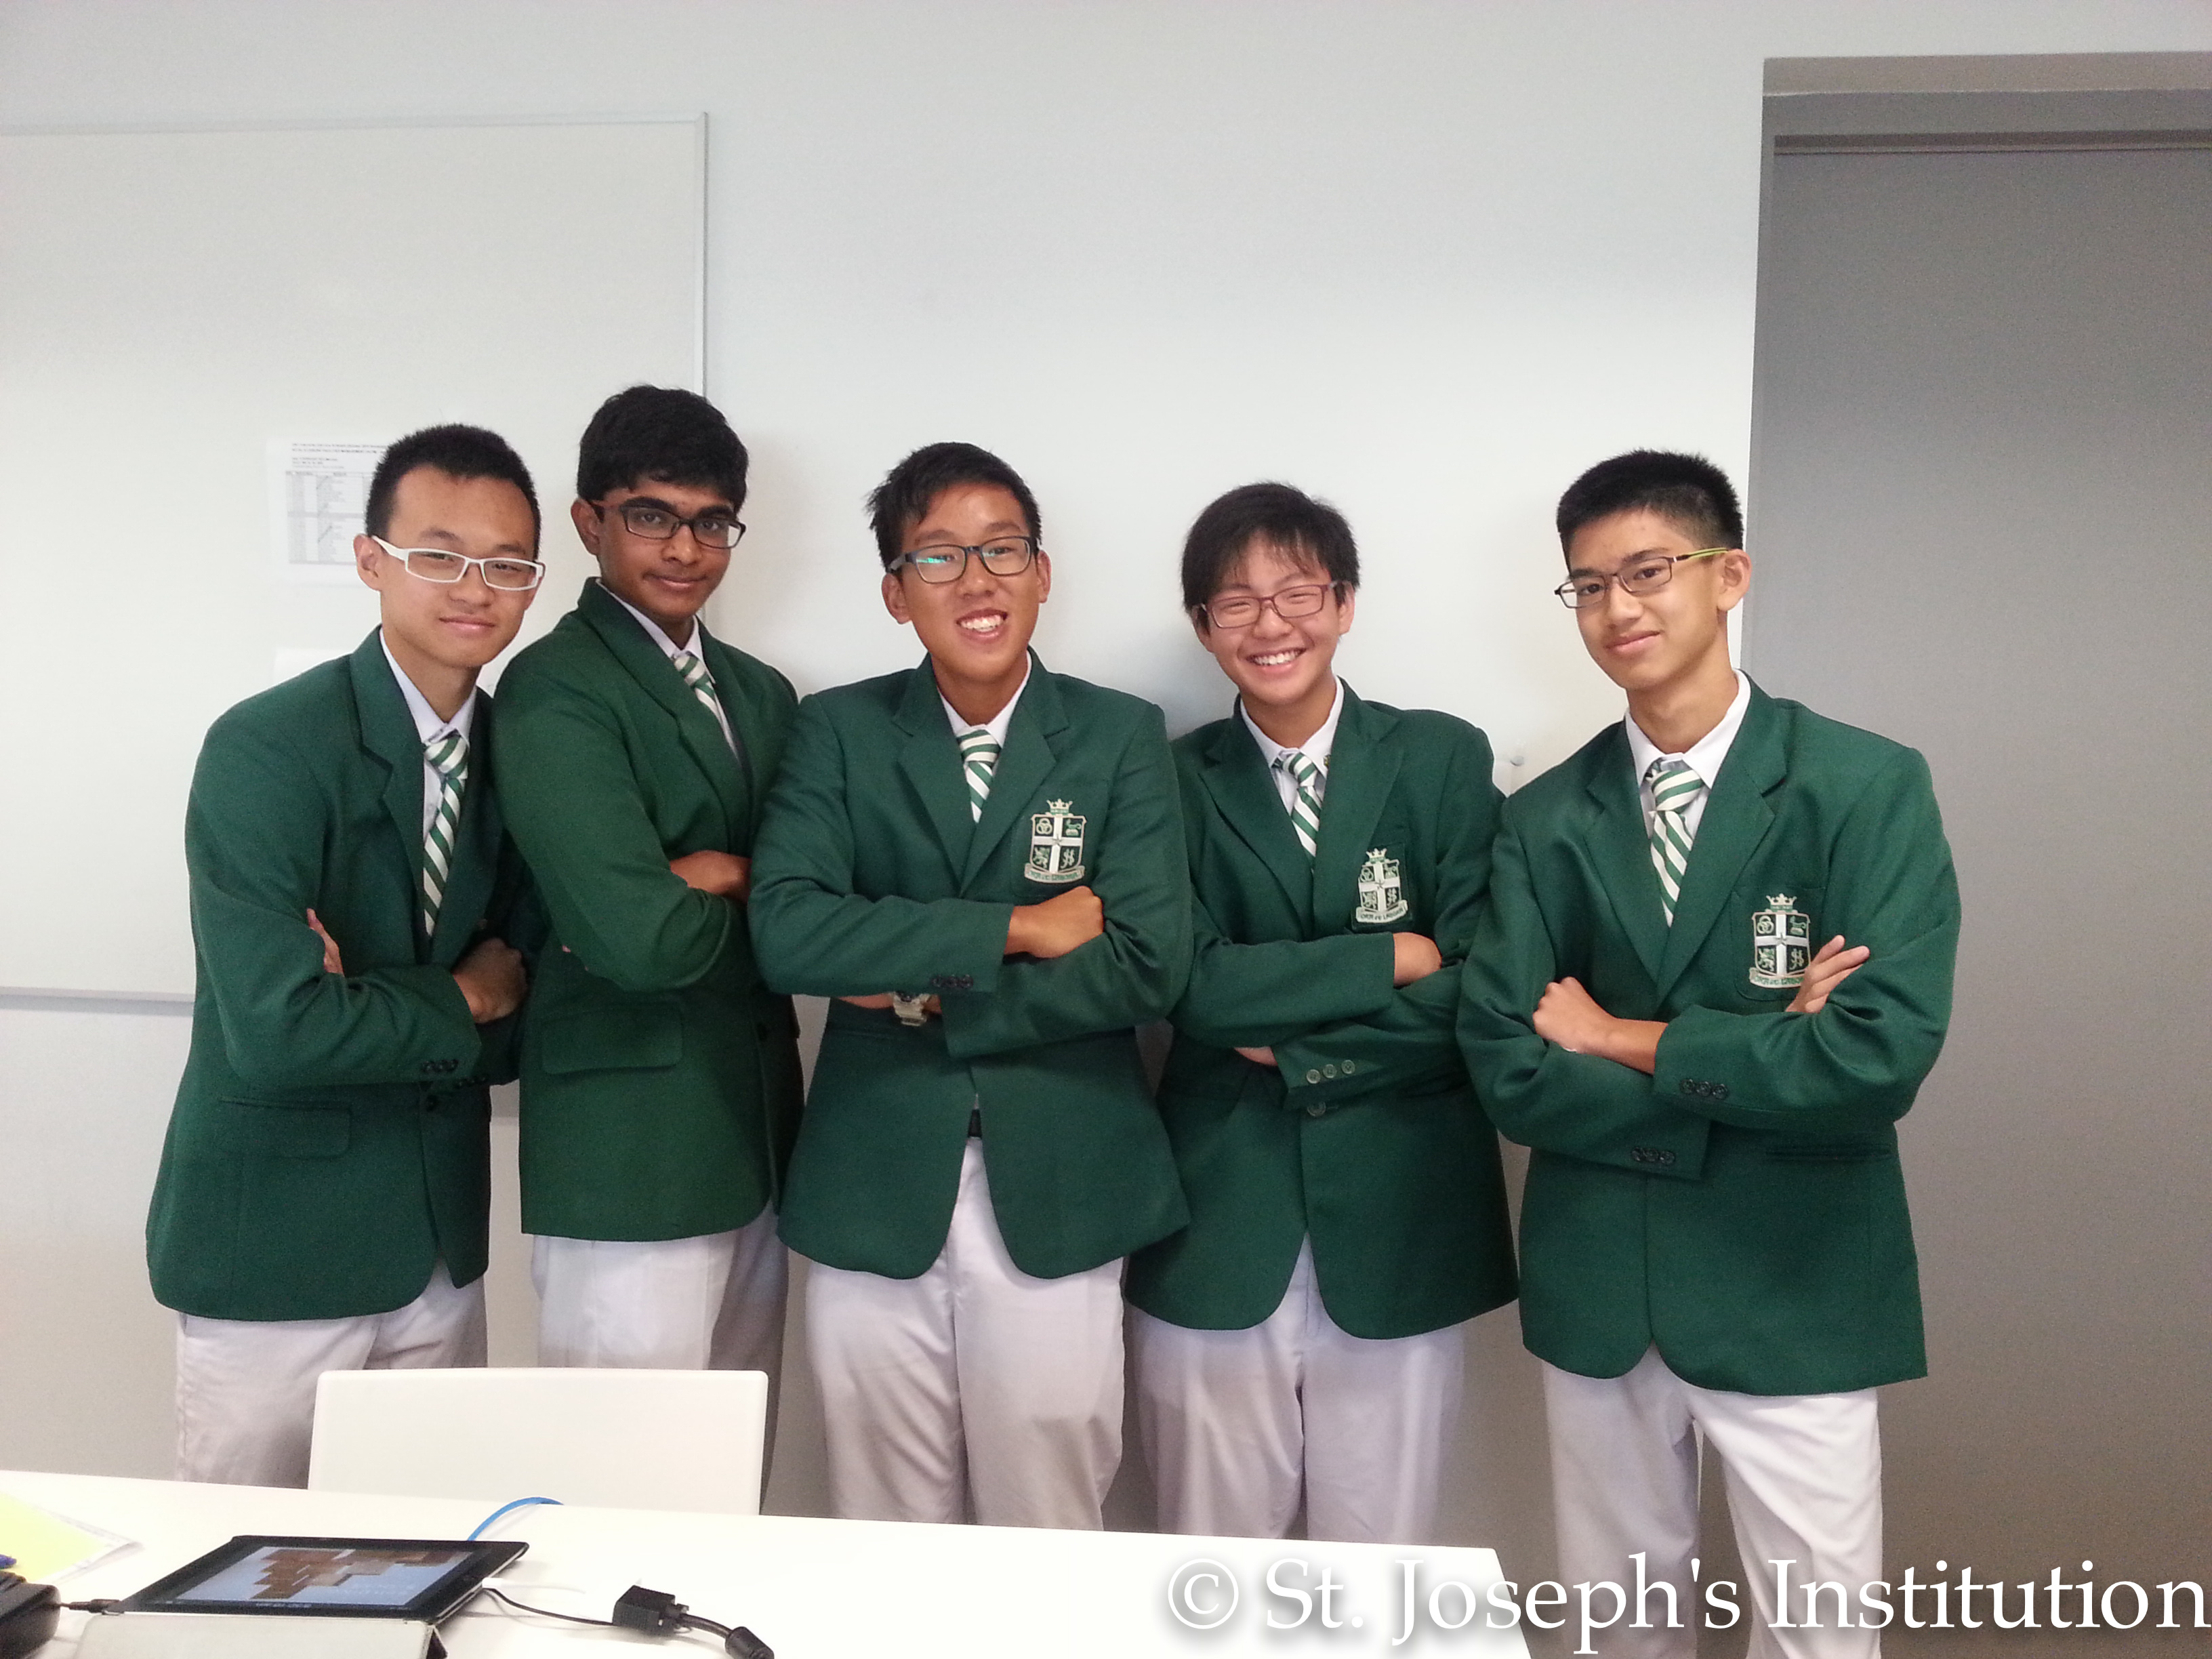 20150411-The team that won 2nd runner up placing.jpg